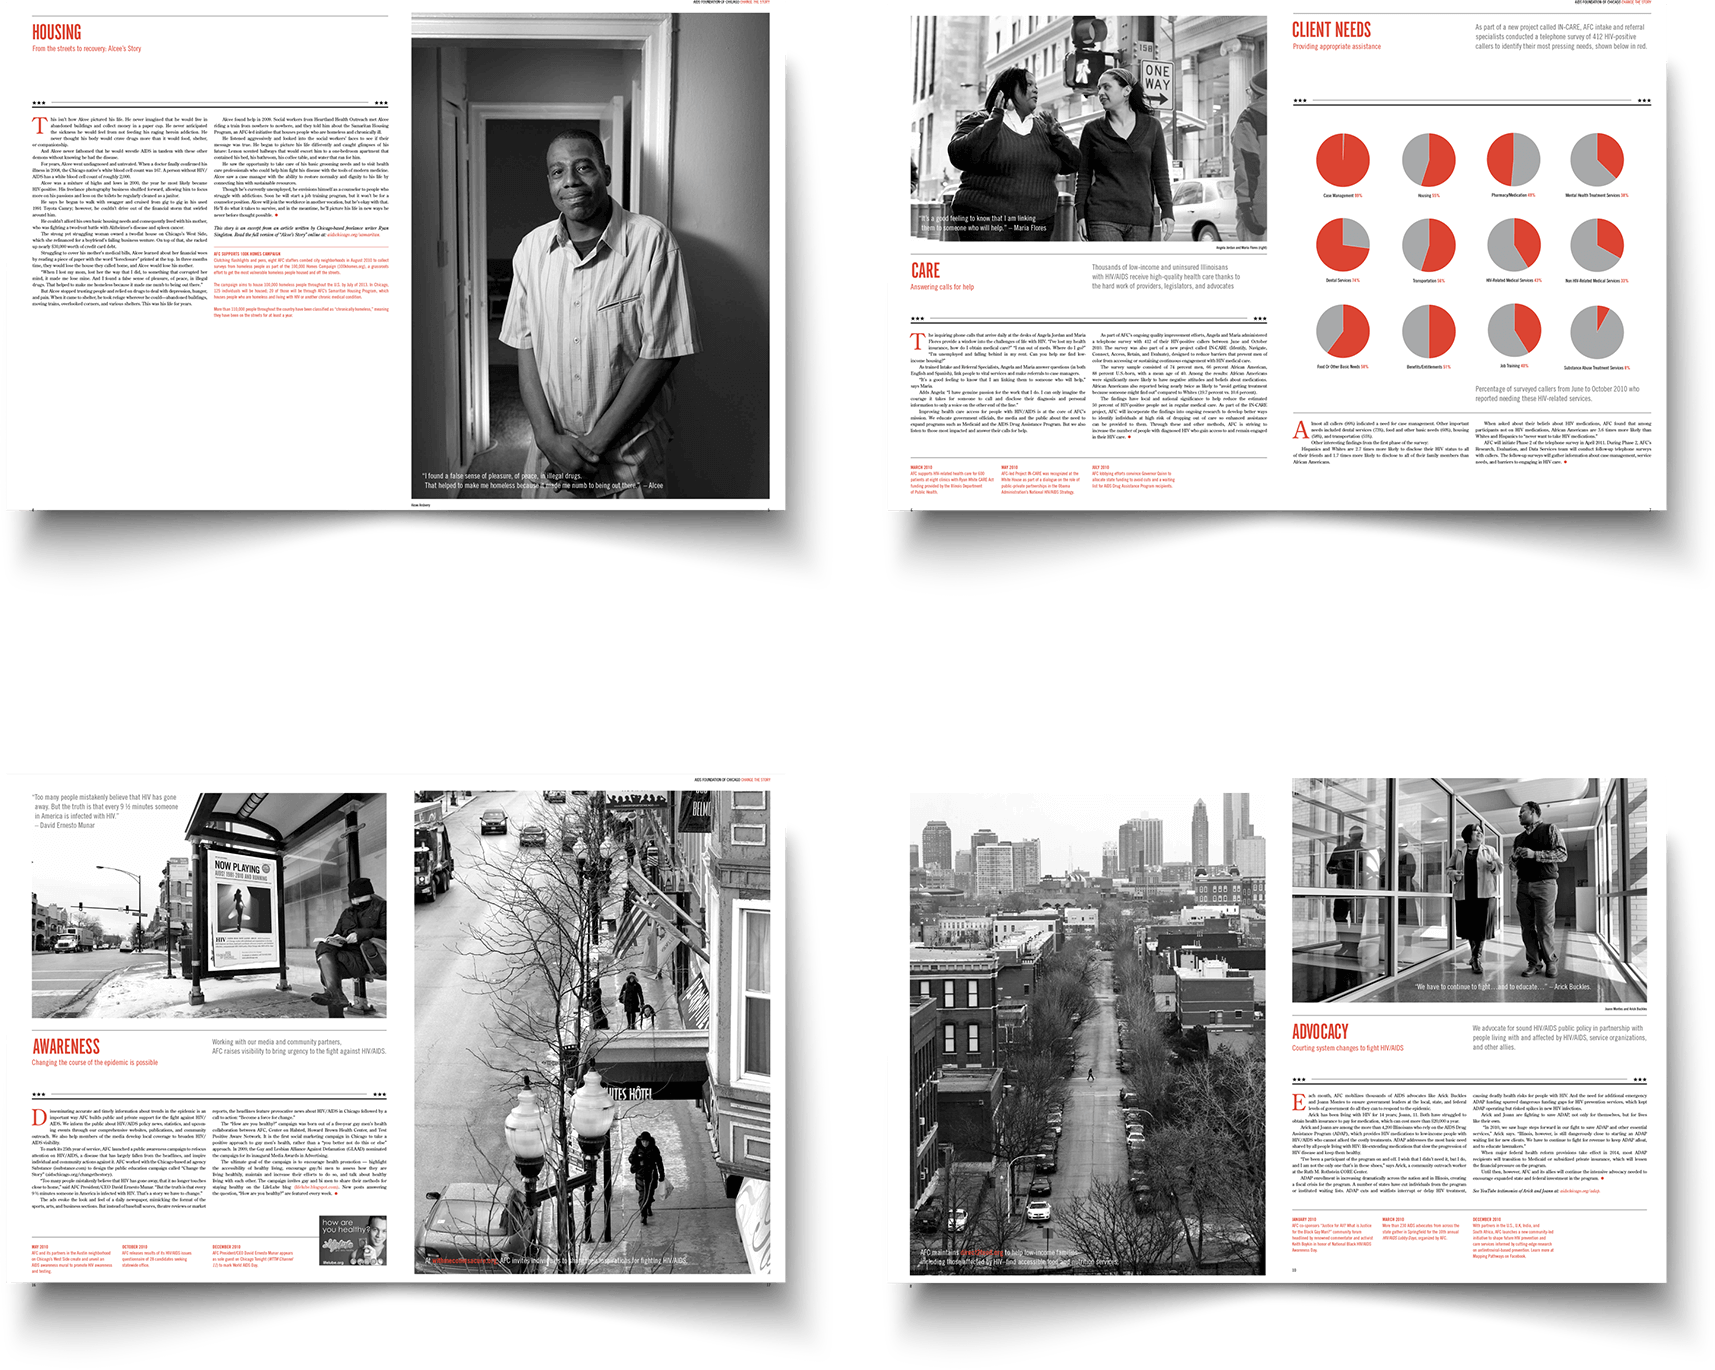 AIDS Foundation of Chicago annual report